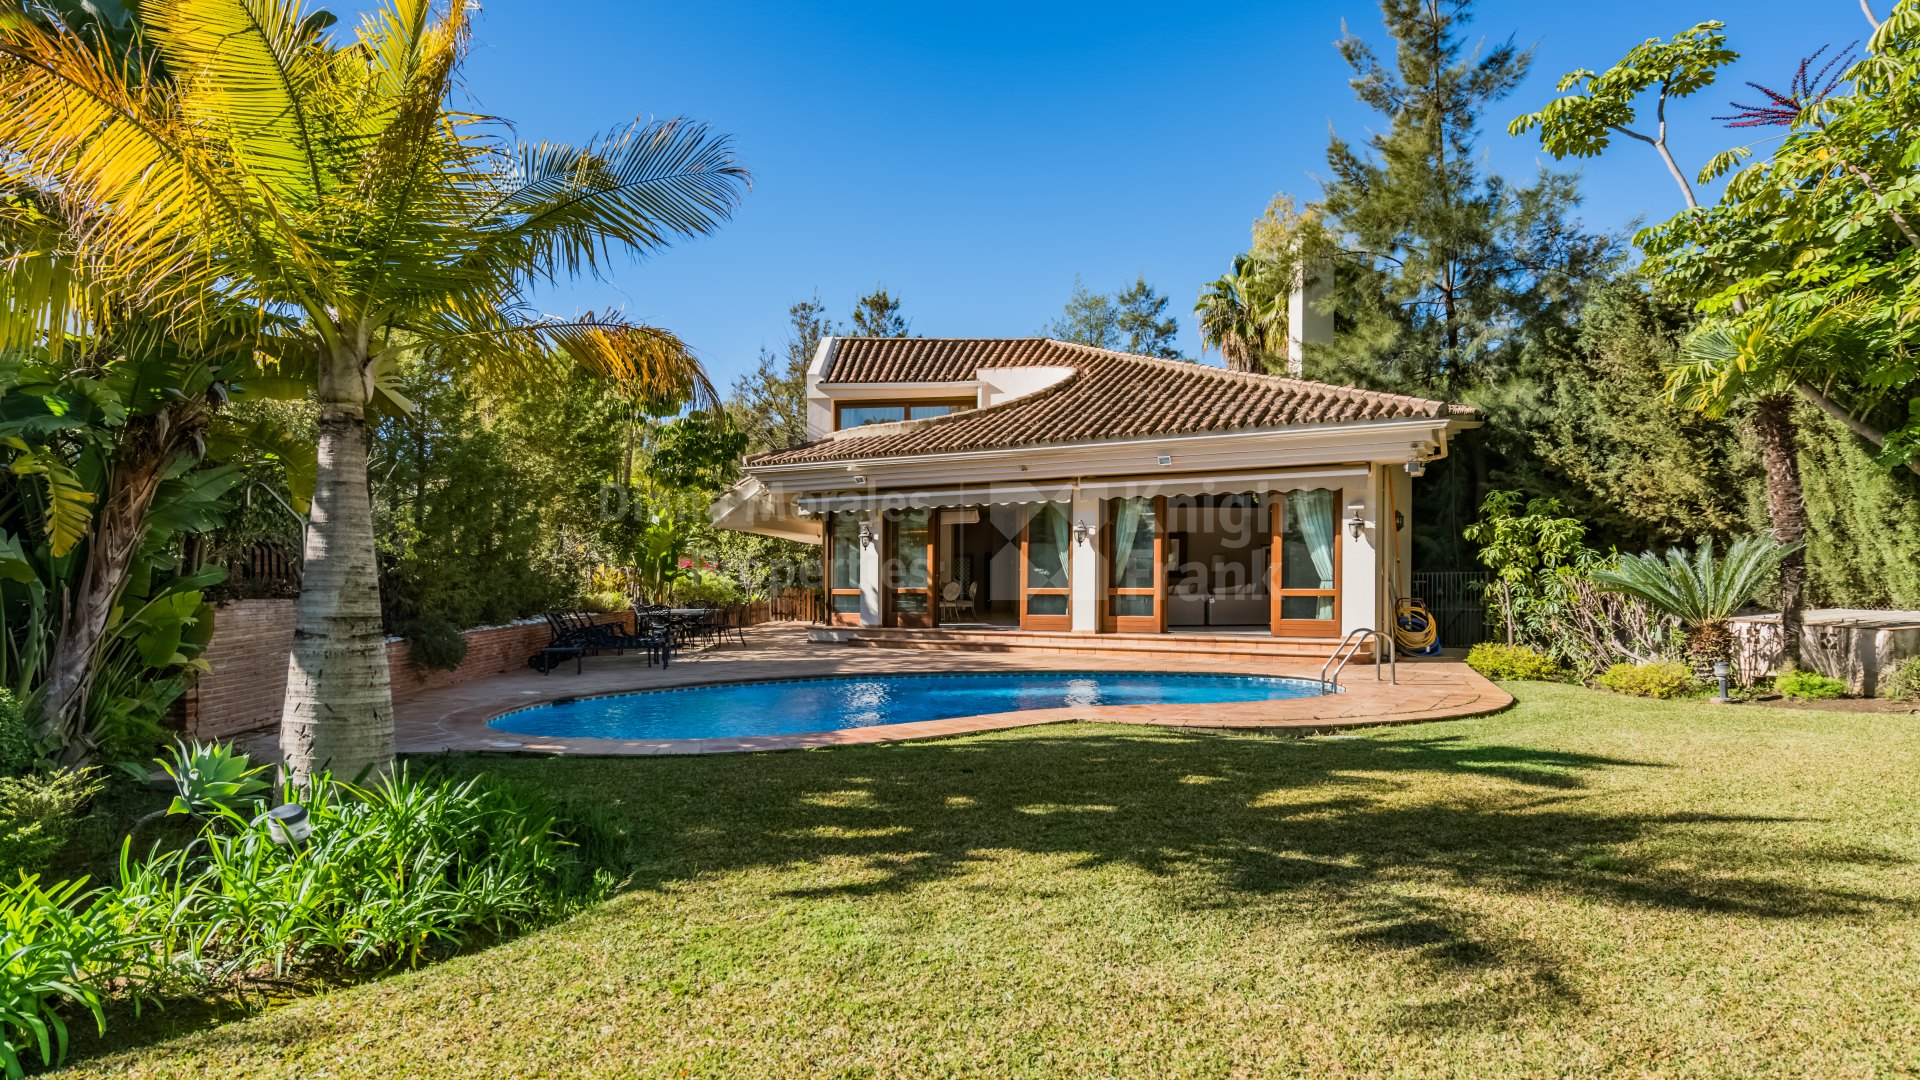 El Herrojo, Four-bedroom villa in enclosed estate